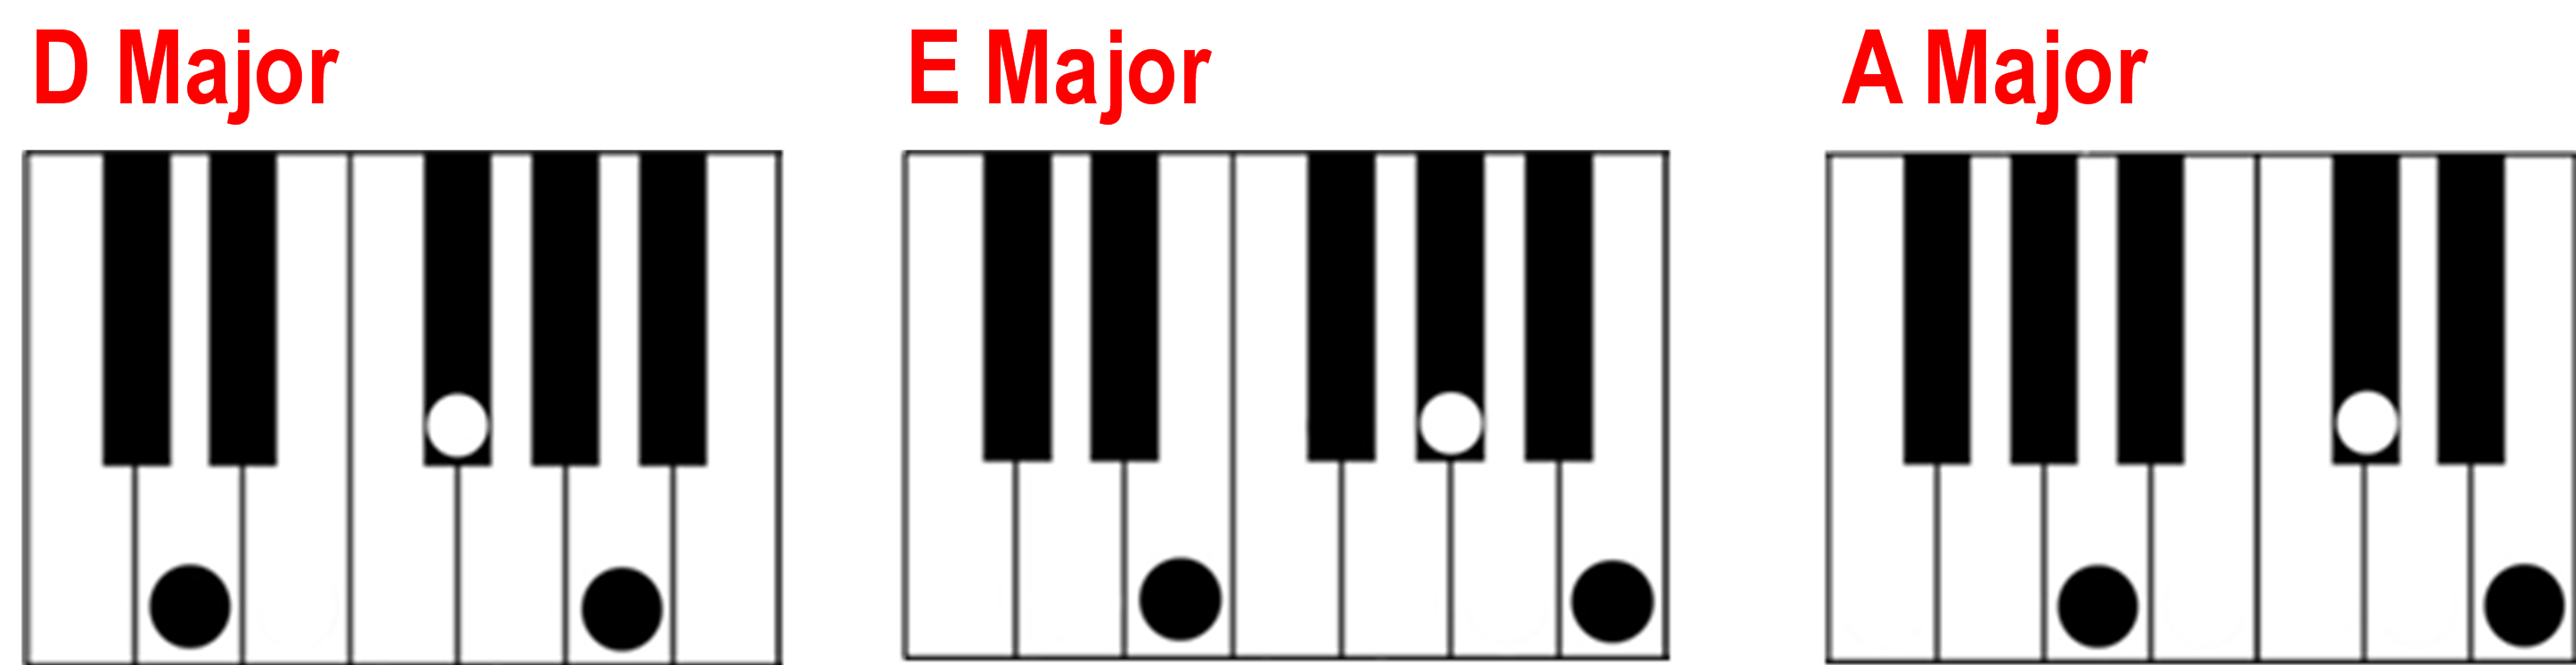 visual piano chords 187 music sheets chords tablature and